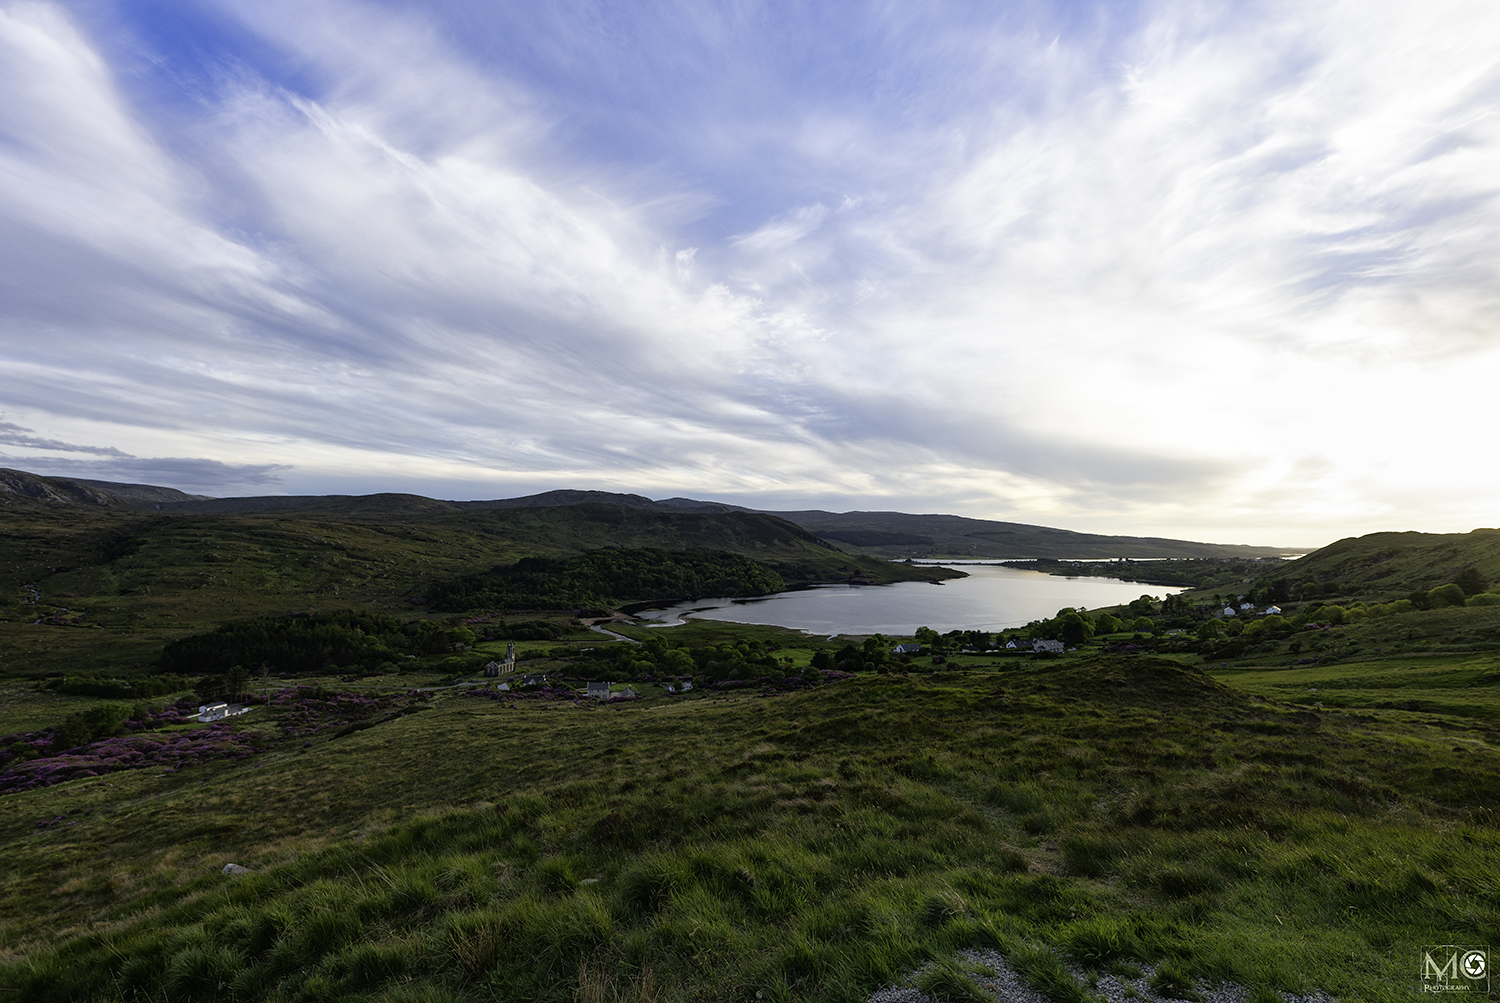 View to the village of Dunlewey and Lough Nacung Upper, Co. Donegal, Ireland